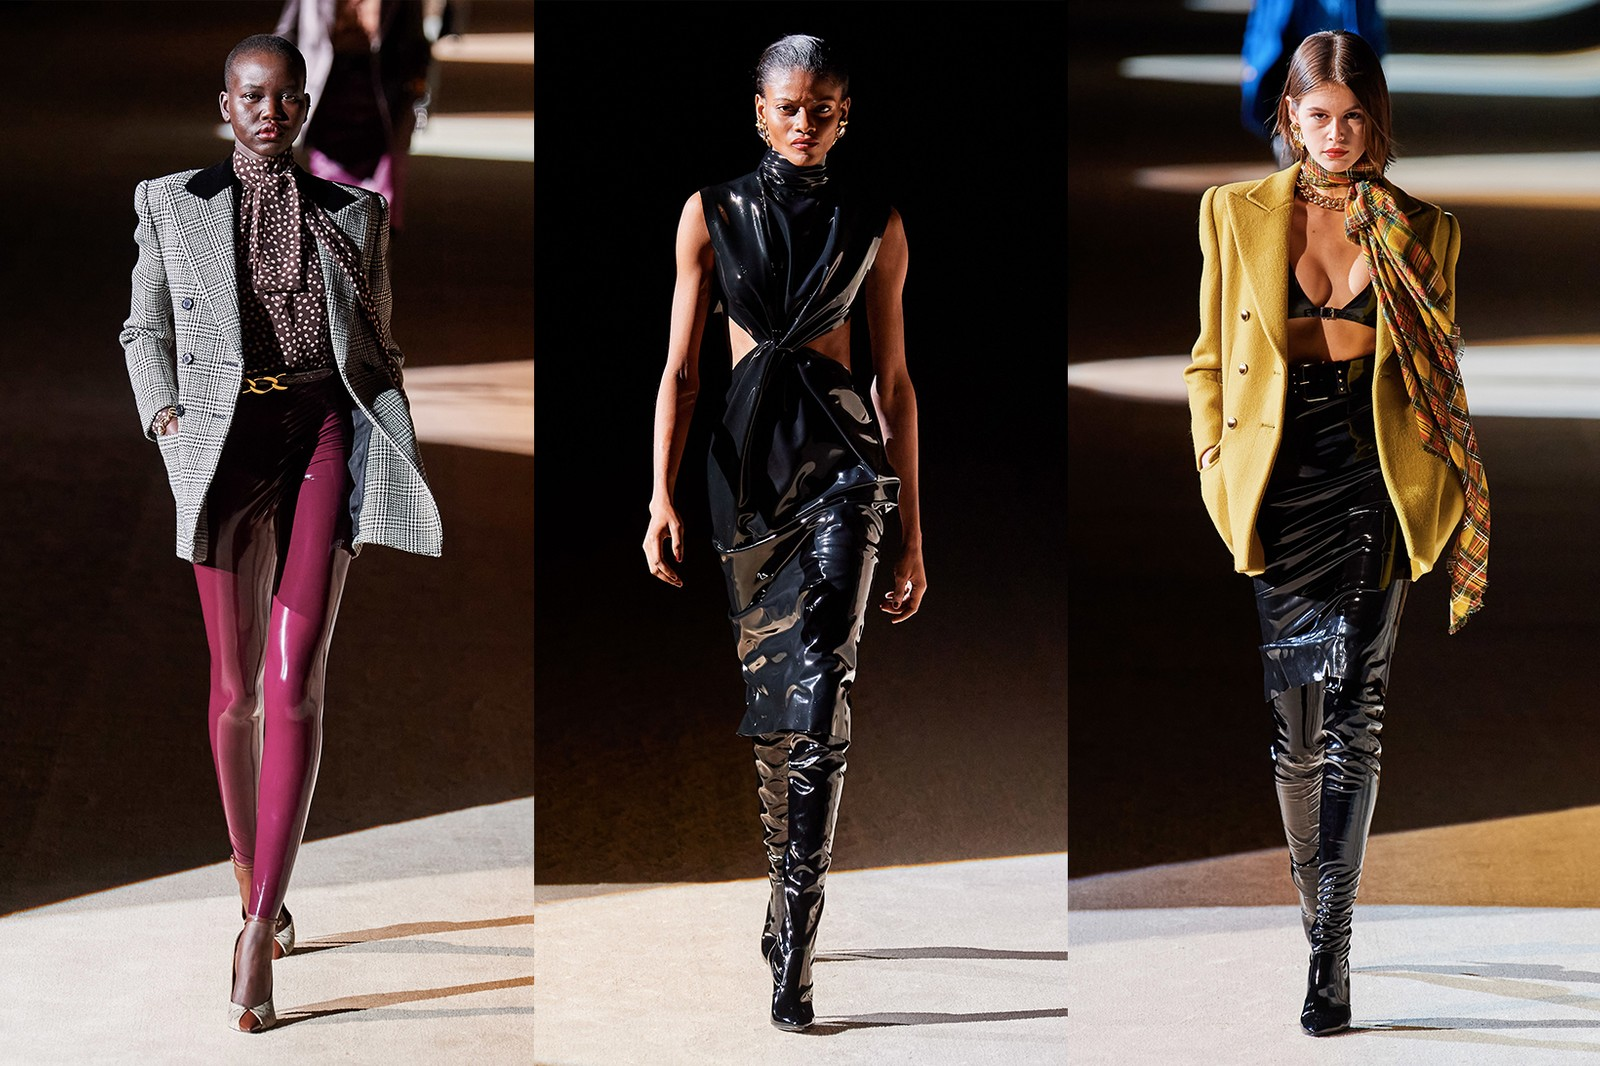 saint laurent fall winter collection paris fashion week runway show kaia gerber adut akech outerwear coats grey yellow mustard scarves blouse bralette latex skirt black maroon pants